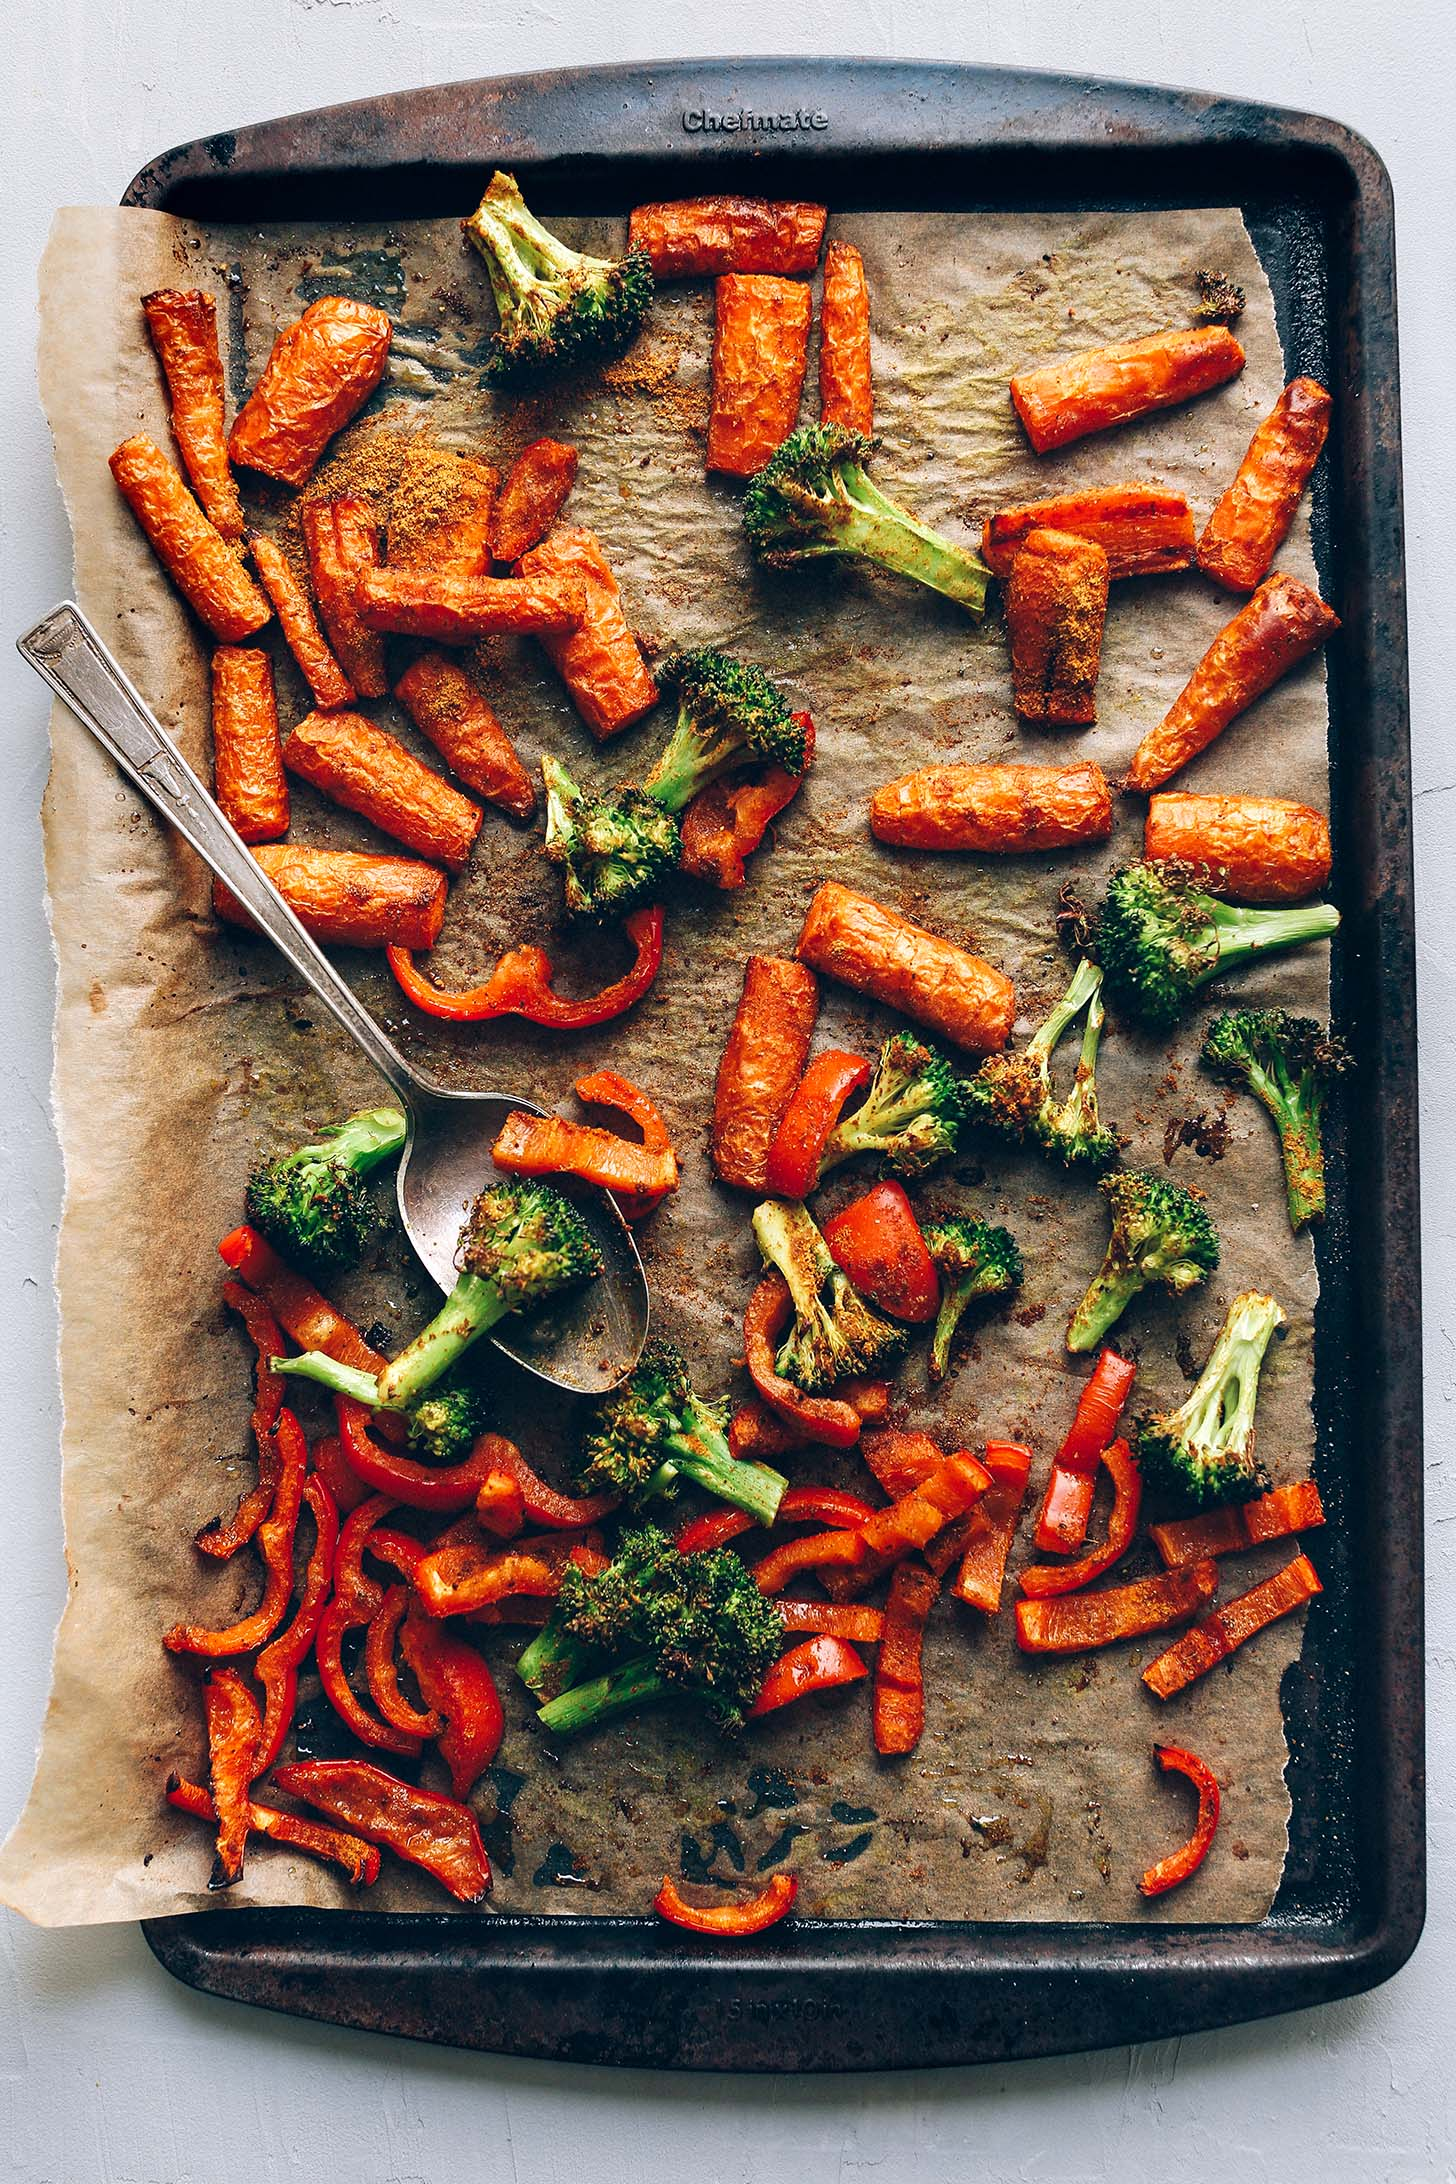 Parchment-lined baking sheet with roasted carrots and broccoli for a delicious Lentil Curry Salad recipe